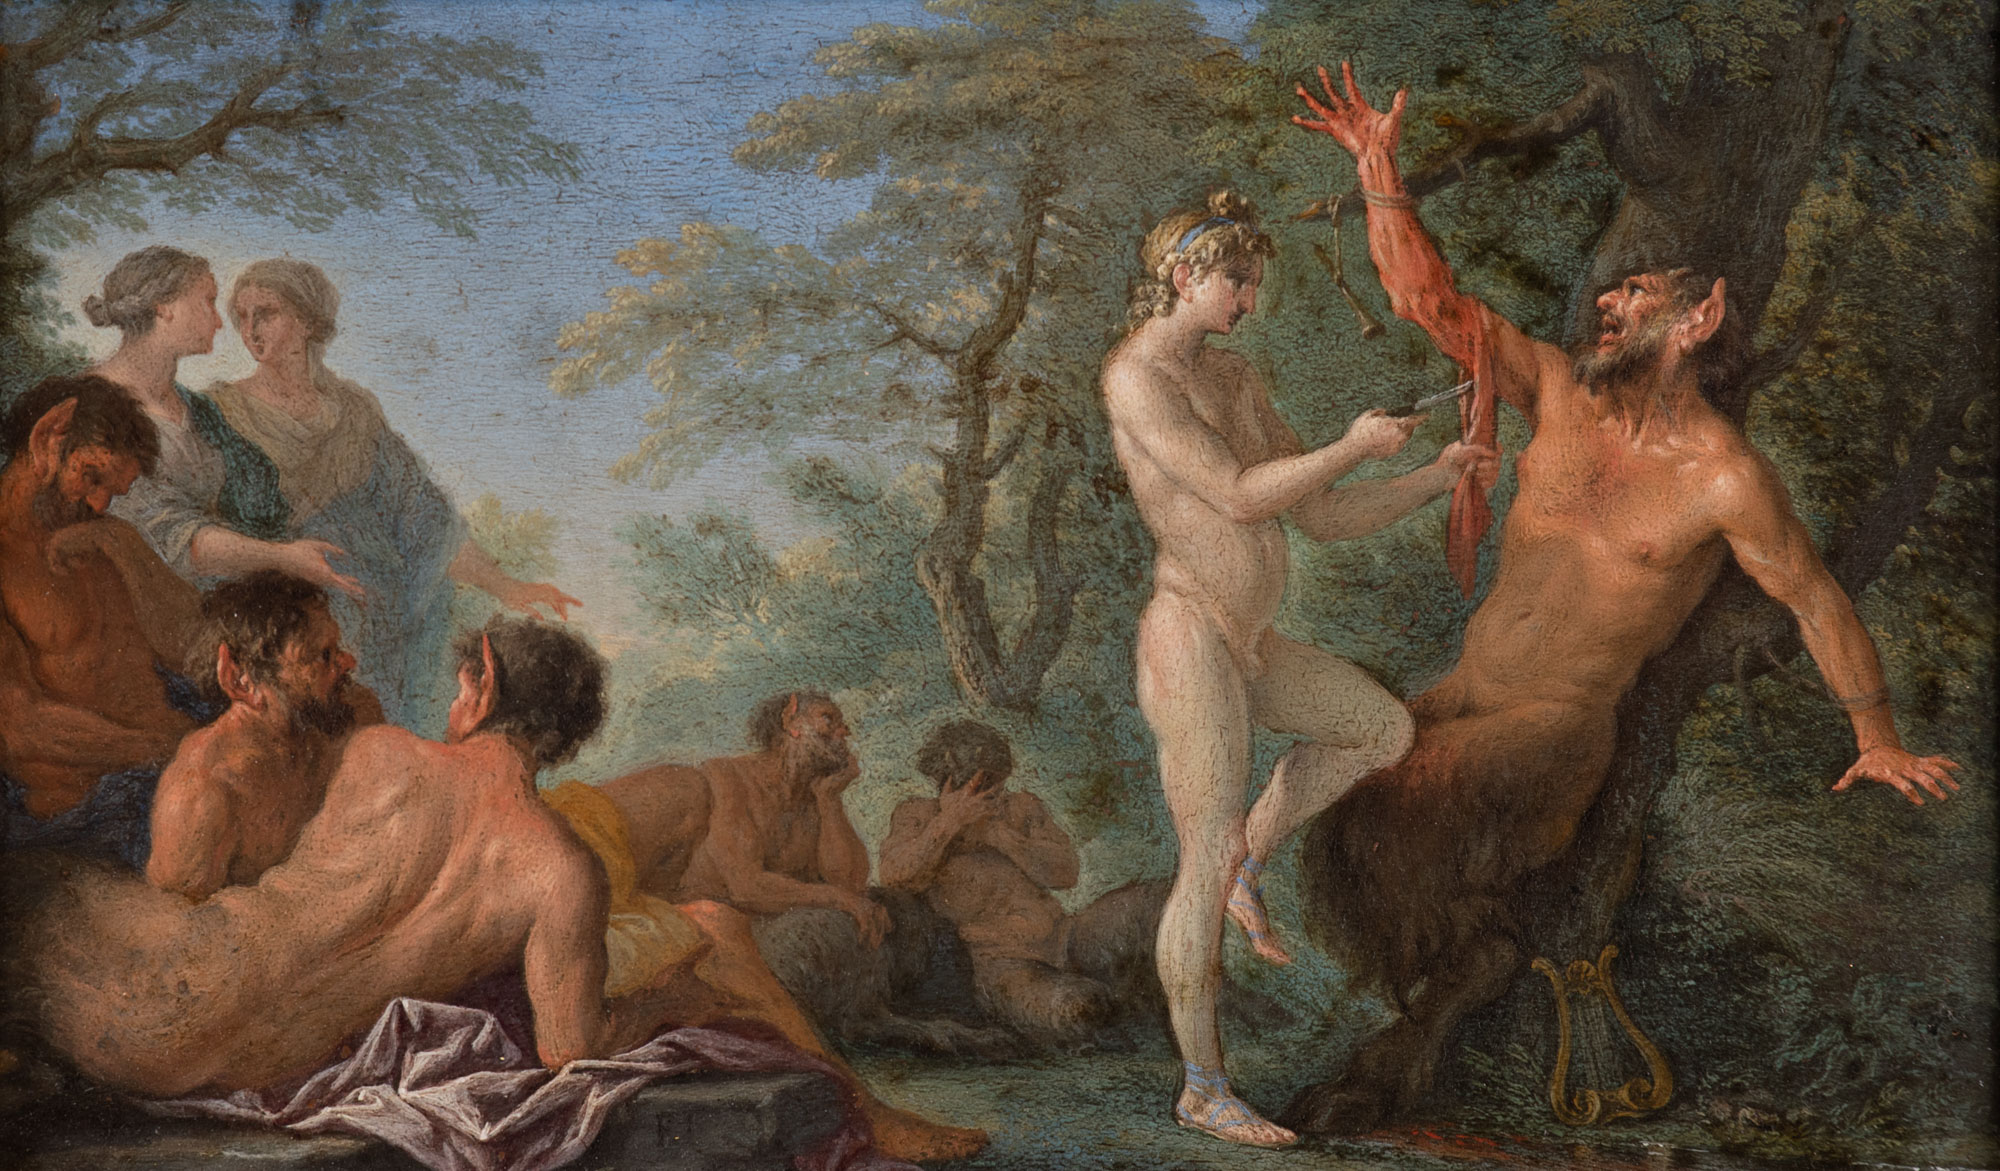 The Flaying of Marsyas, by Filippo Lauri (1623-1694).